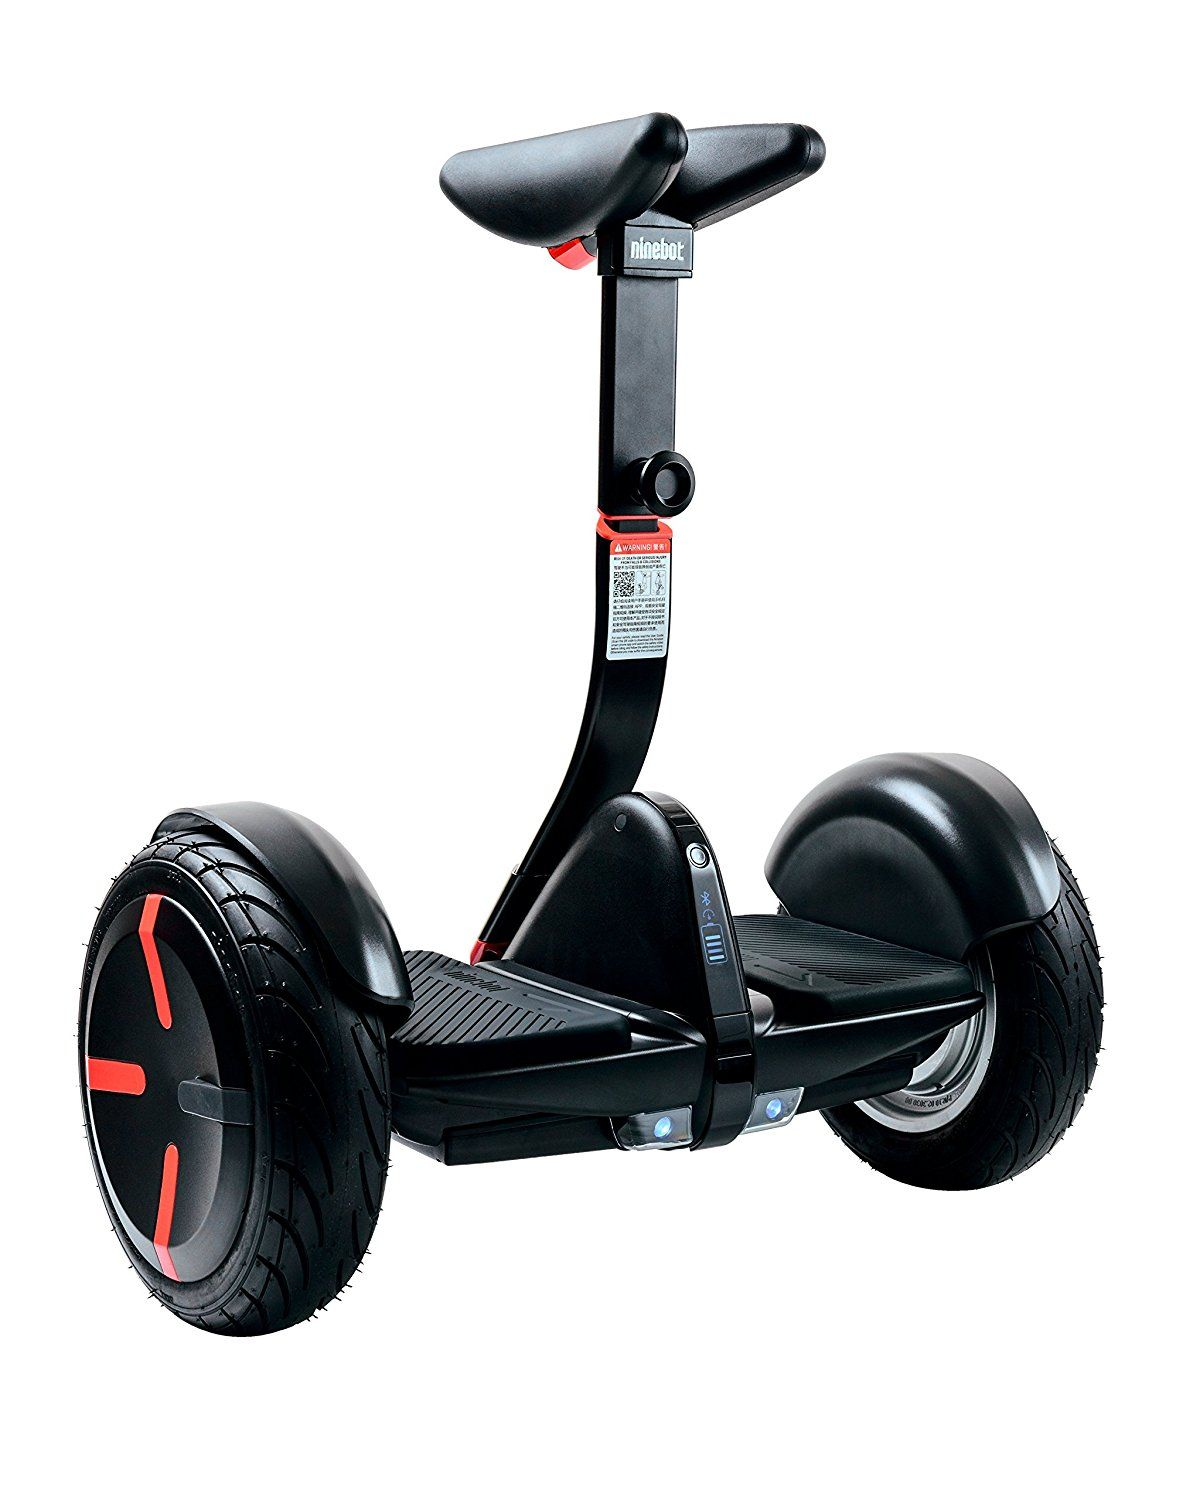 Best Black Friday Segway Minipro Deal Comes From Amazon Amz Reviews Segway Personal Transporter Balancing Scooter